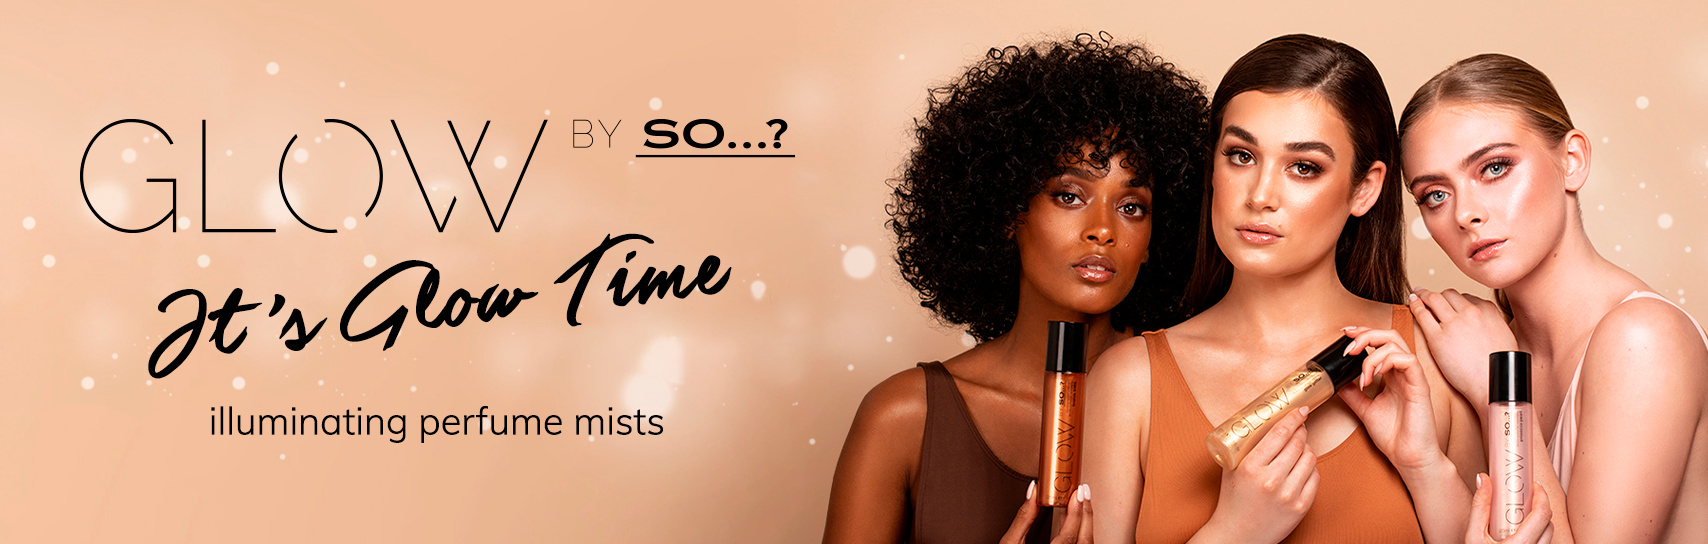 [GLOW by So...? - products]